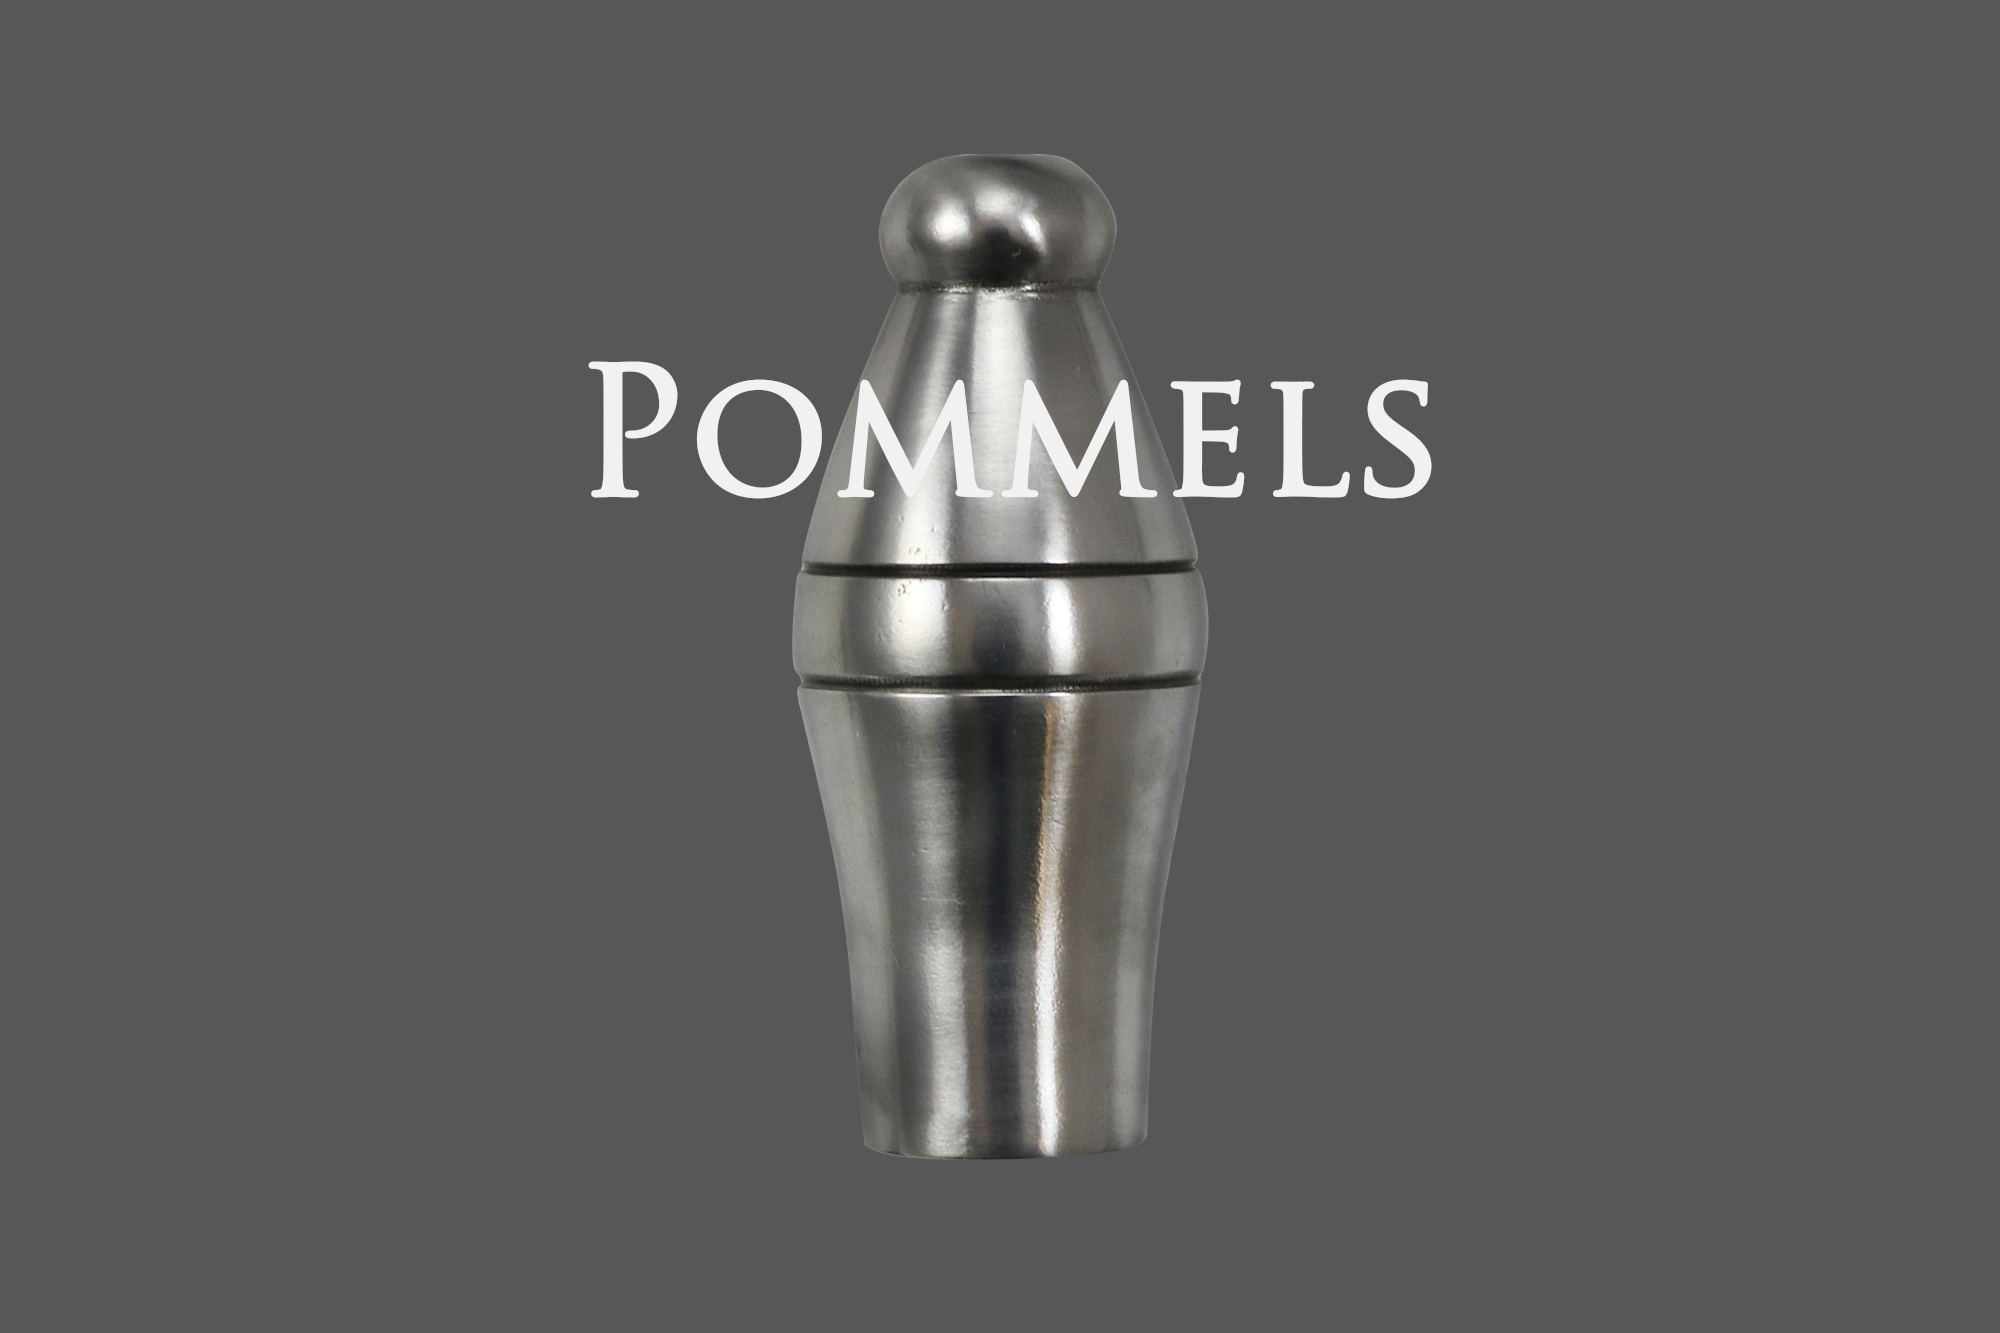 pommels-category-image-sword-parts-page